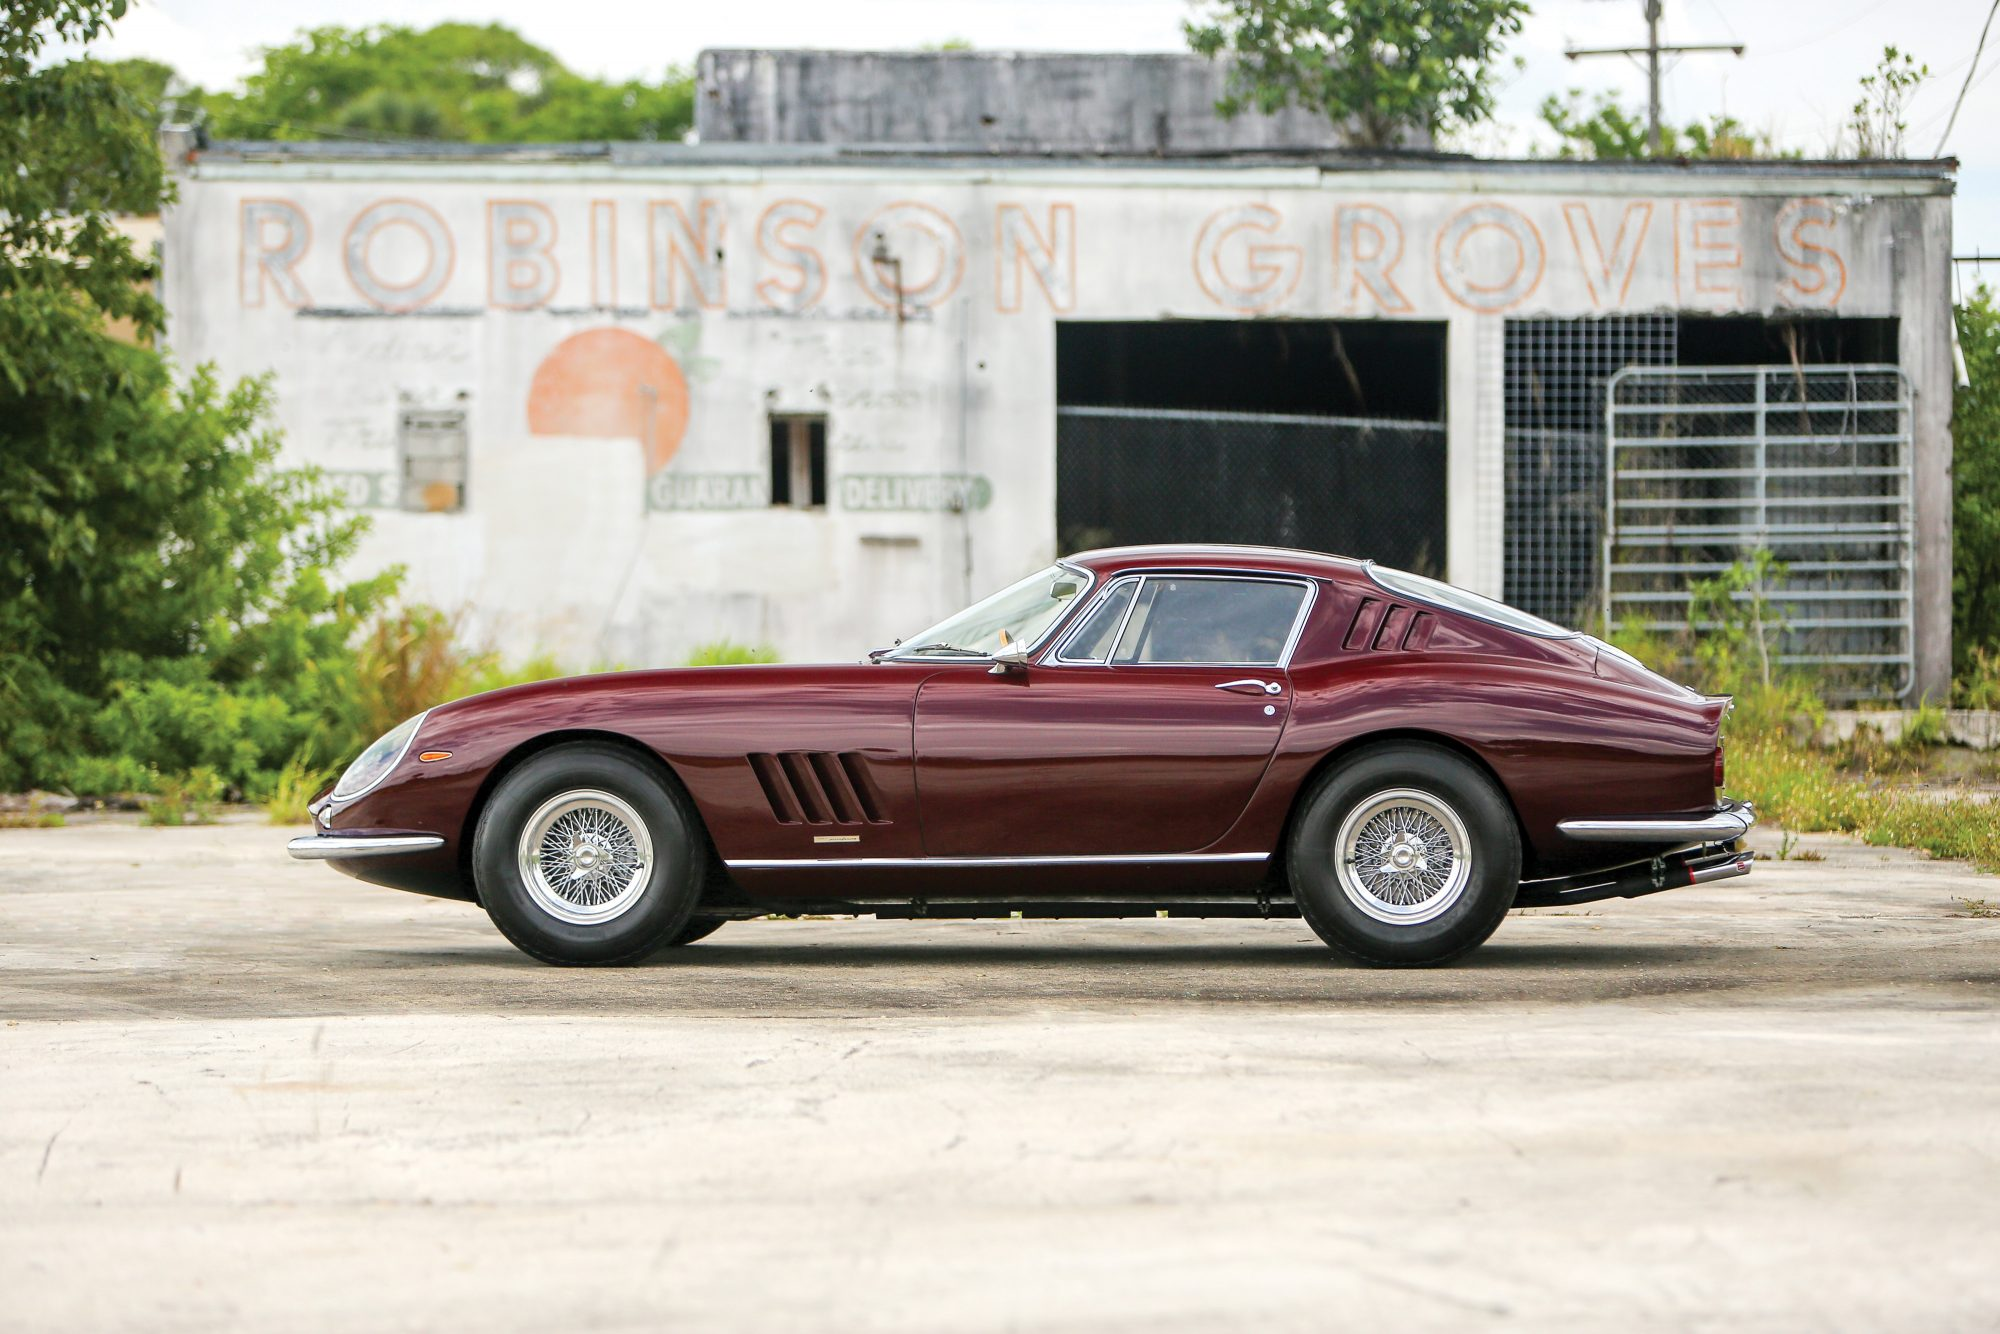 The Ferrari 275 GTB Is A Stunning 1960s Grand Tourer That Has Only Gotten Better With Age • Petrolicious